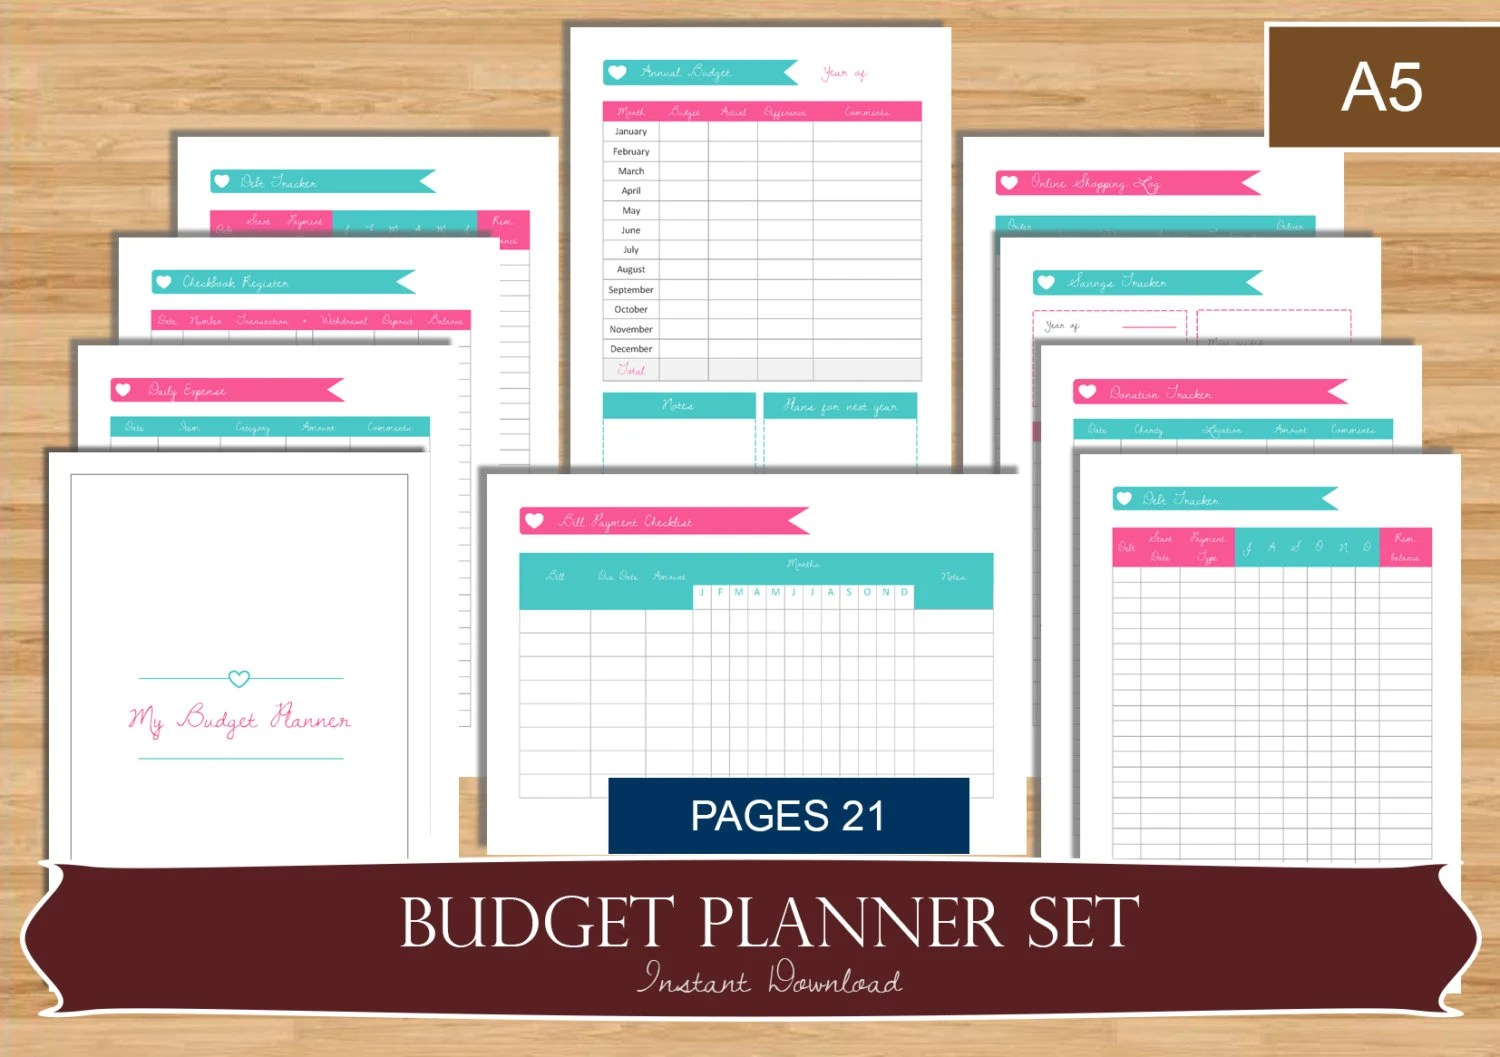 A5 Budget And Bill Payment Planner Set With Divider Page